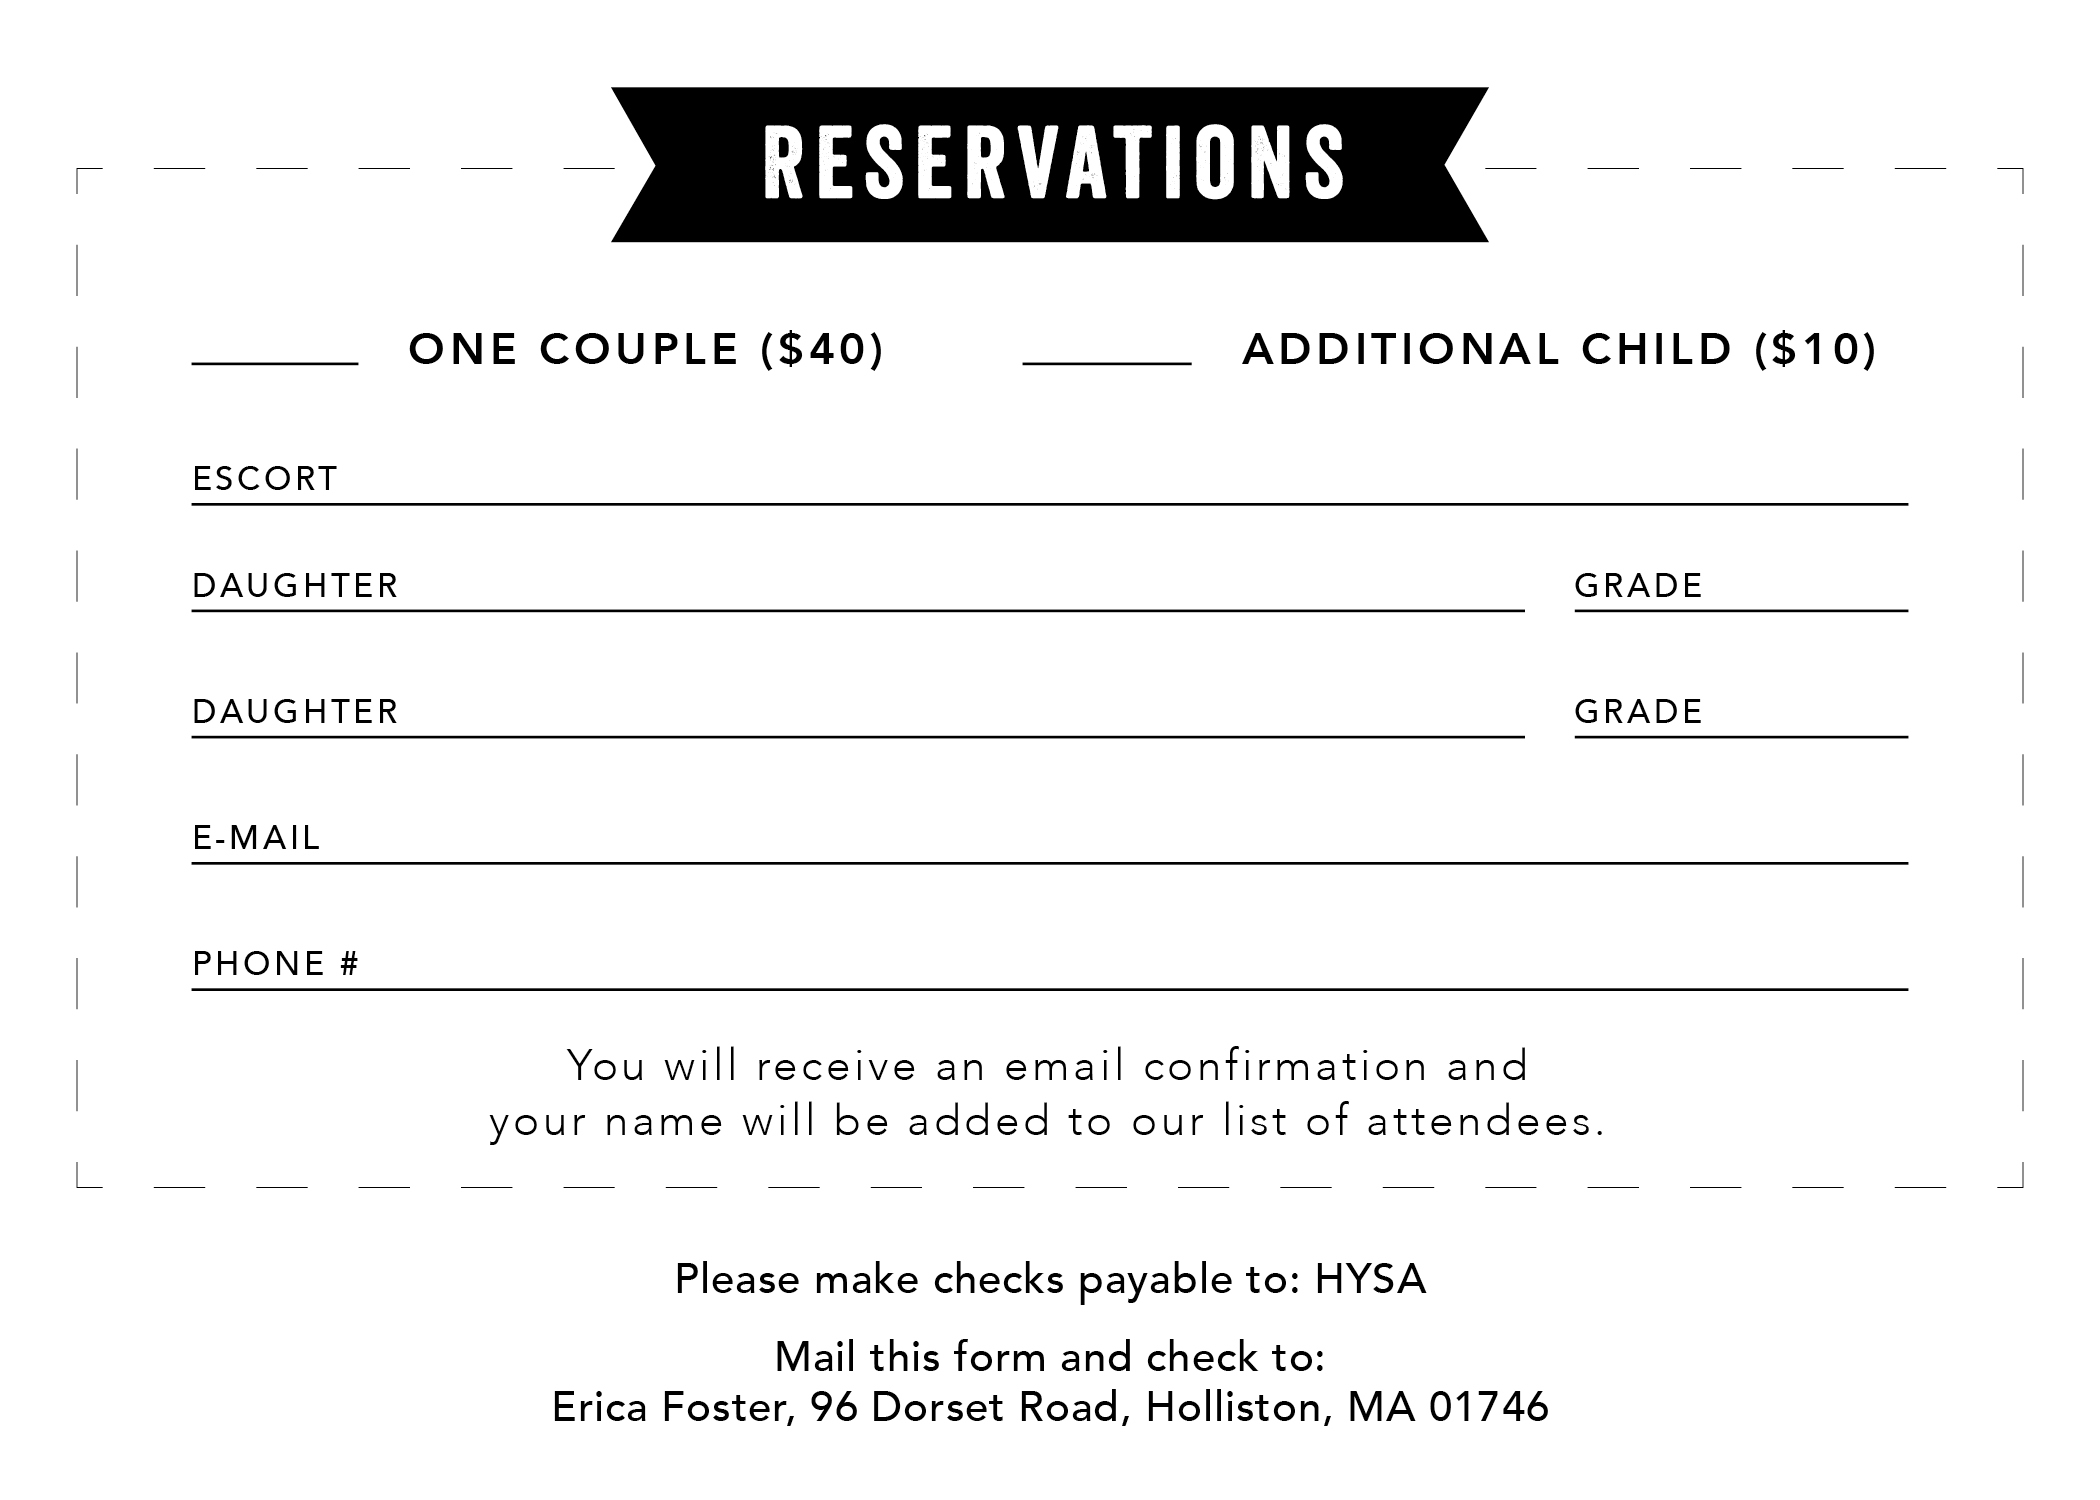 Black & White RSVP form so it can easily be printed from a home printer and mailed to the event planner.